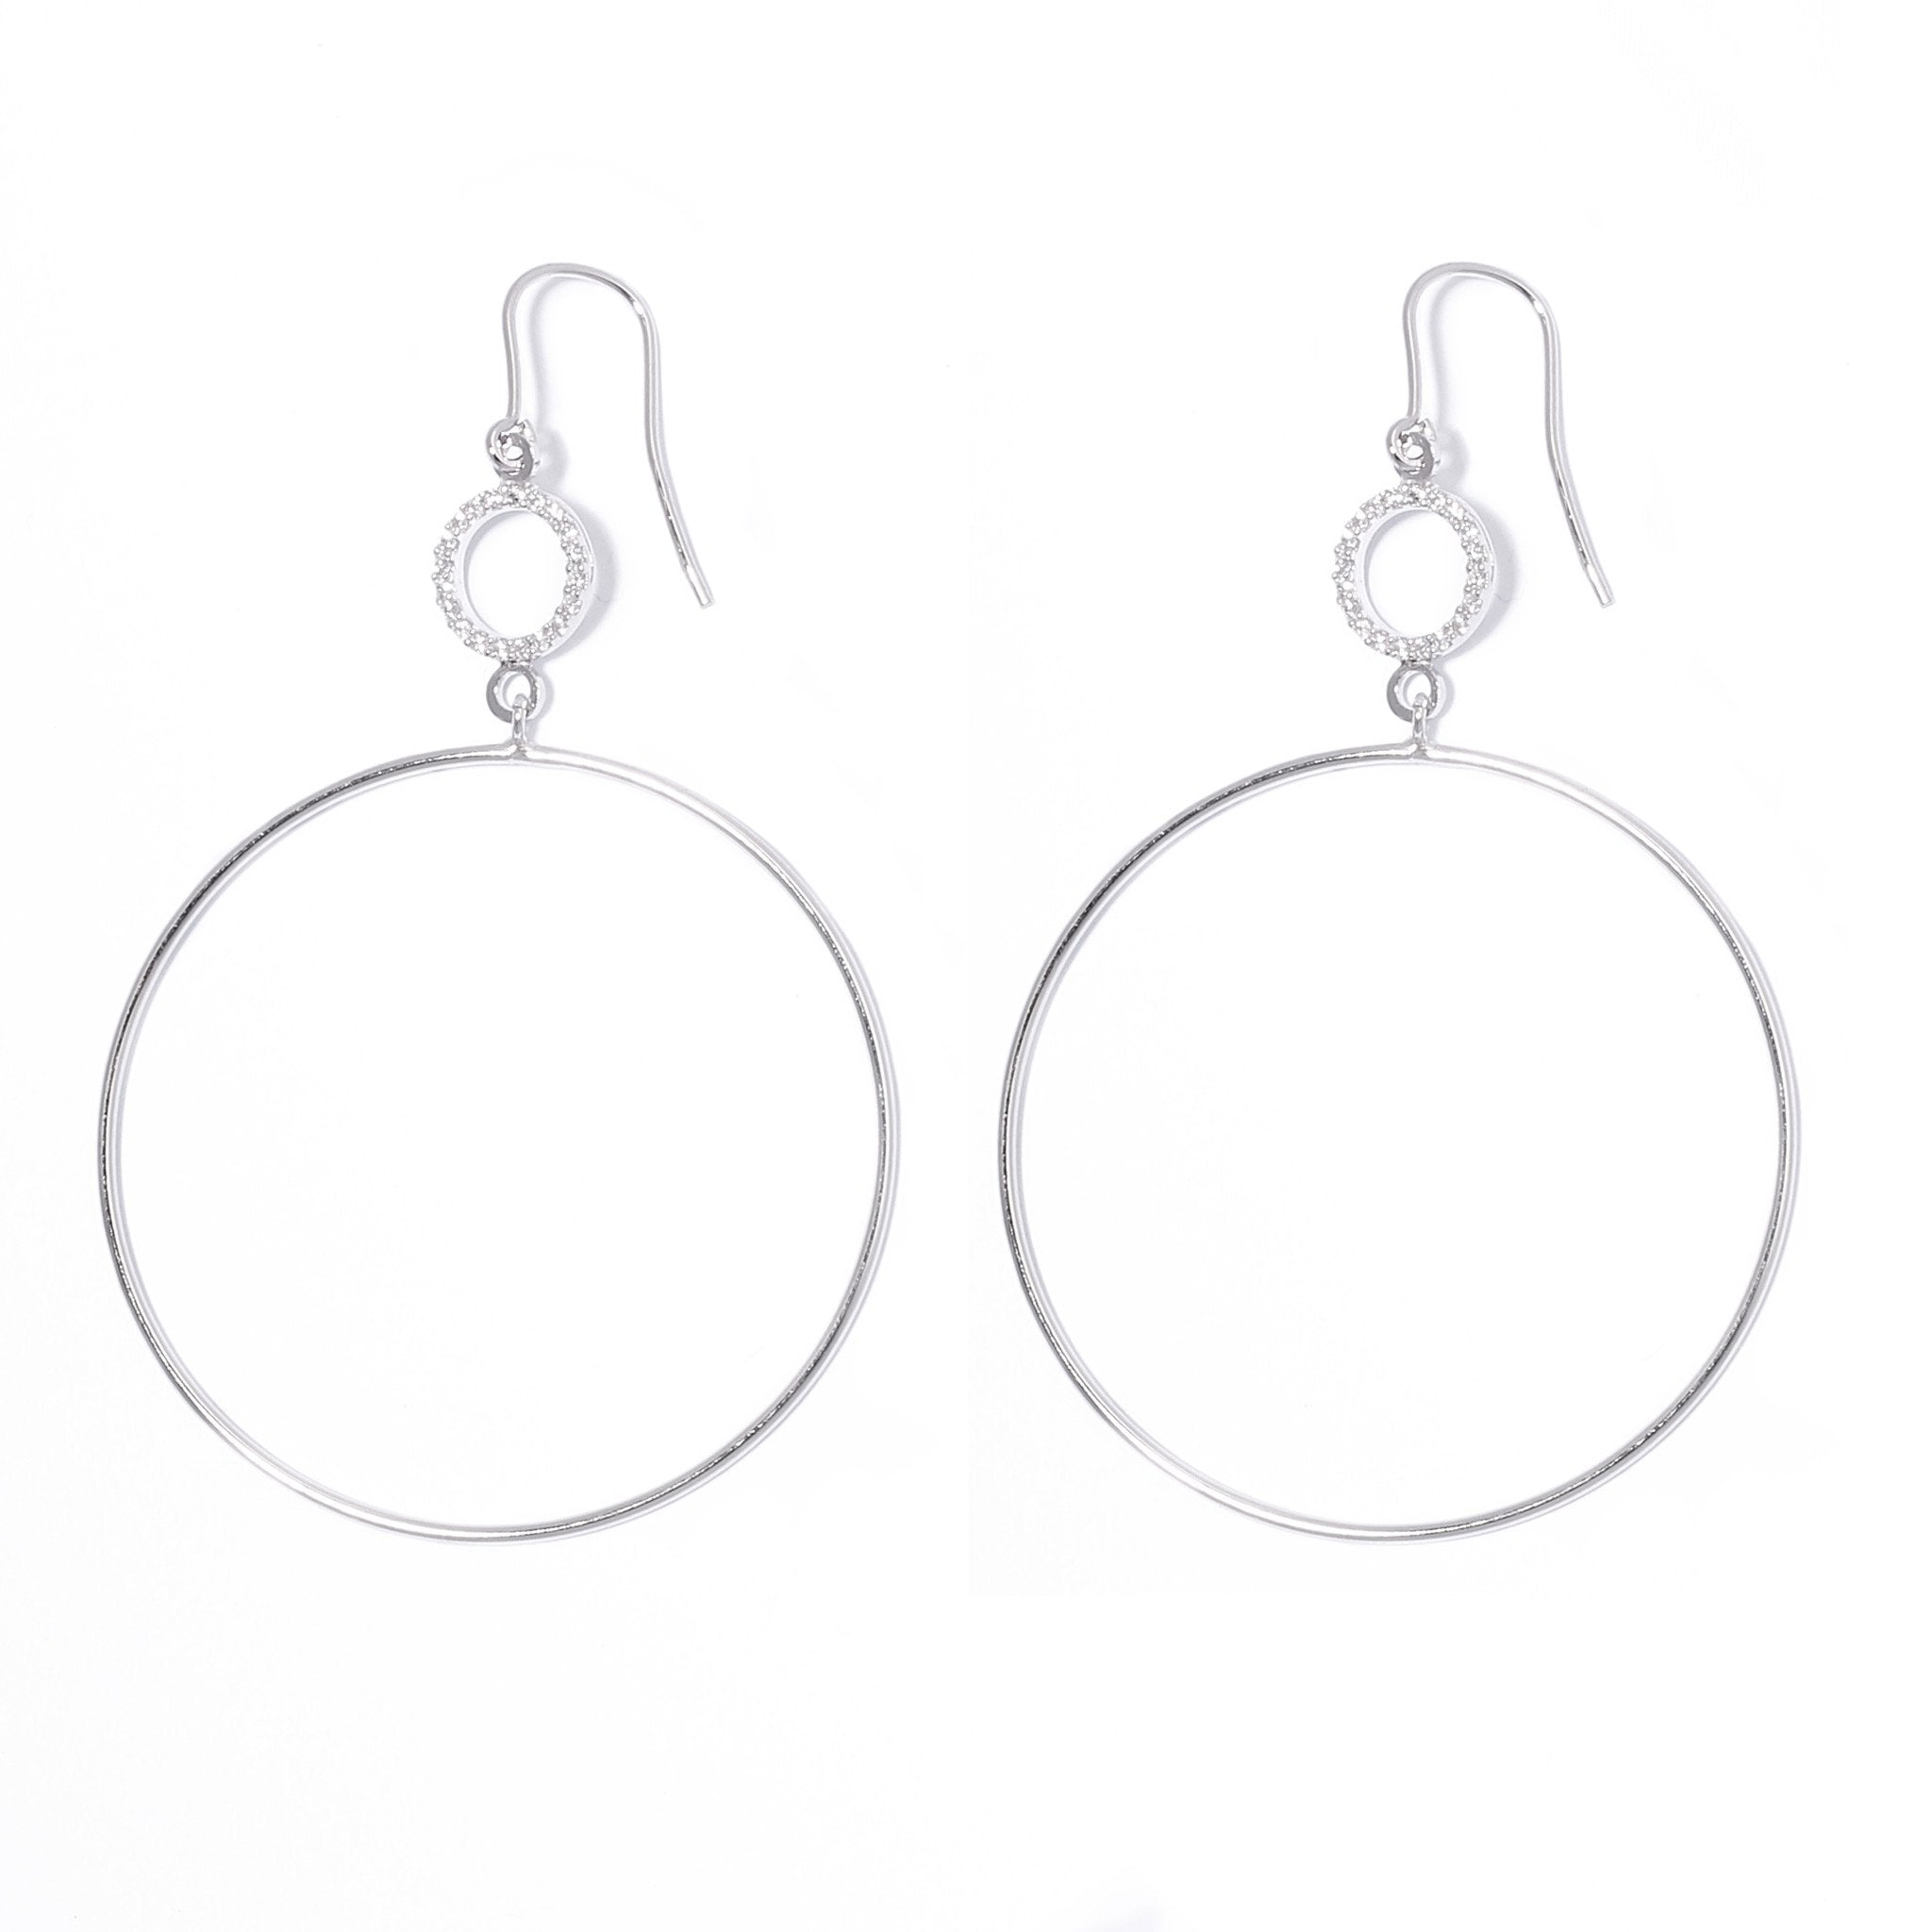 La SPARKLY LOOP Earring